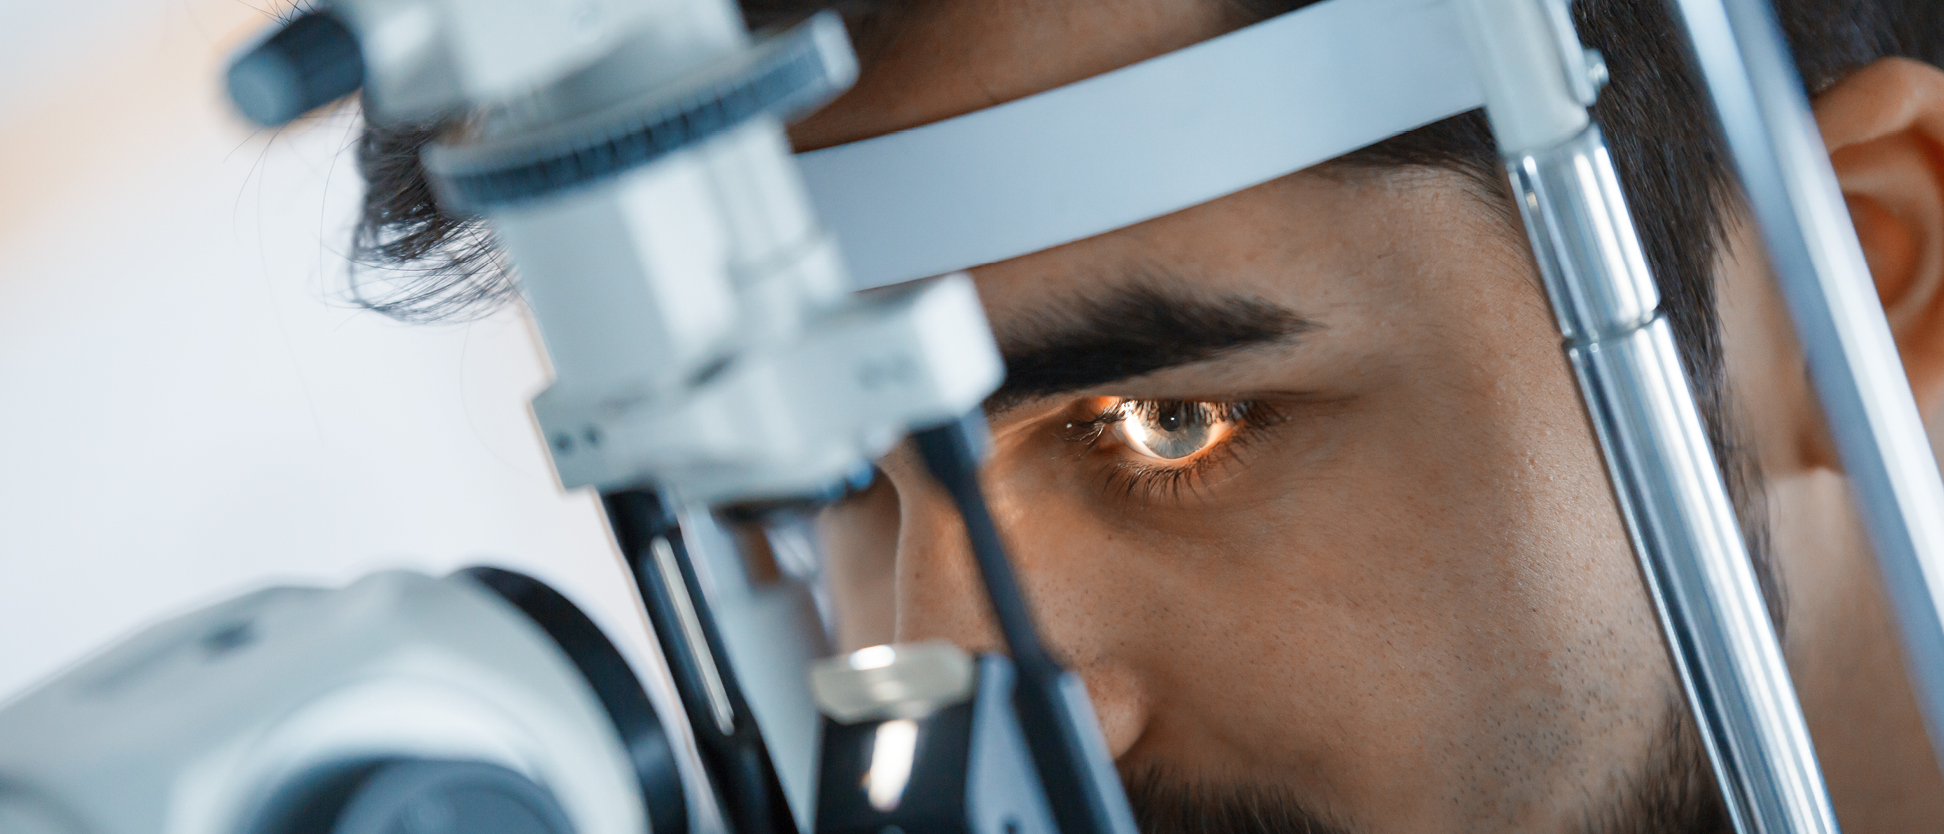 man looking into optometrist eye exam device